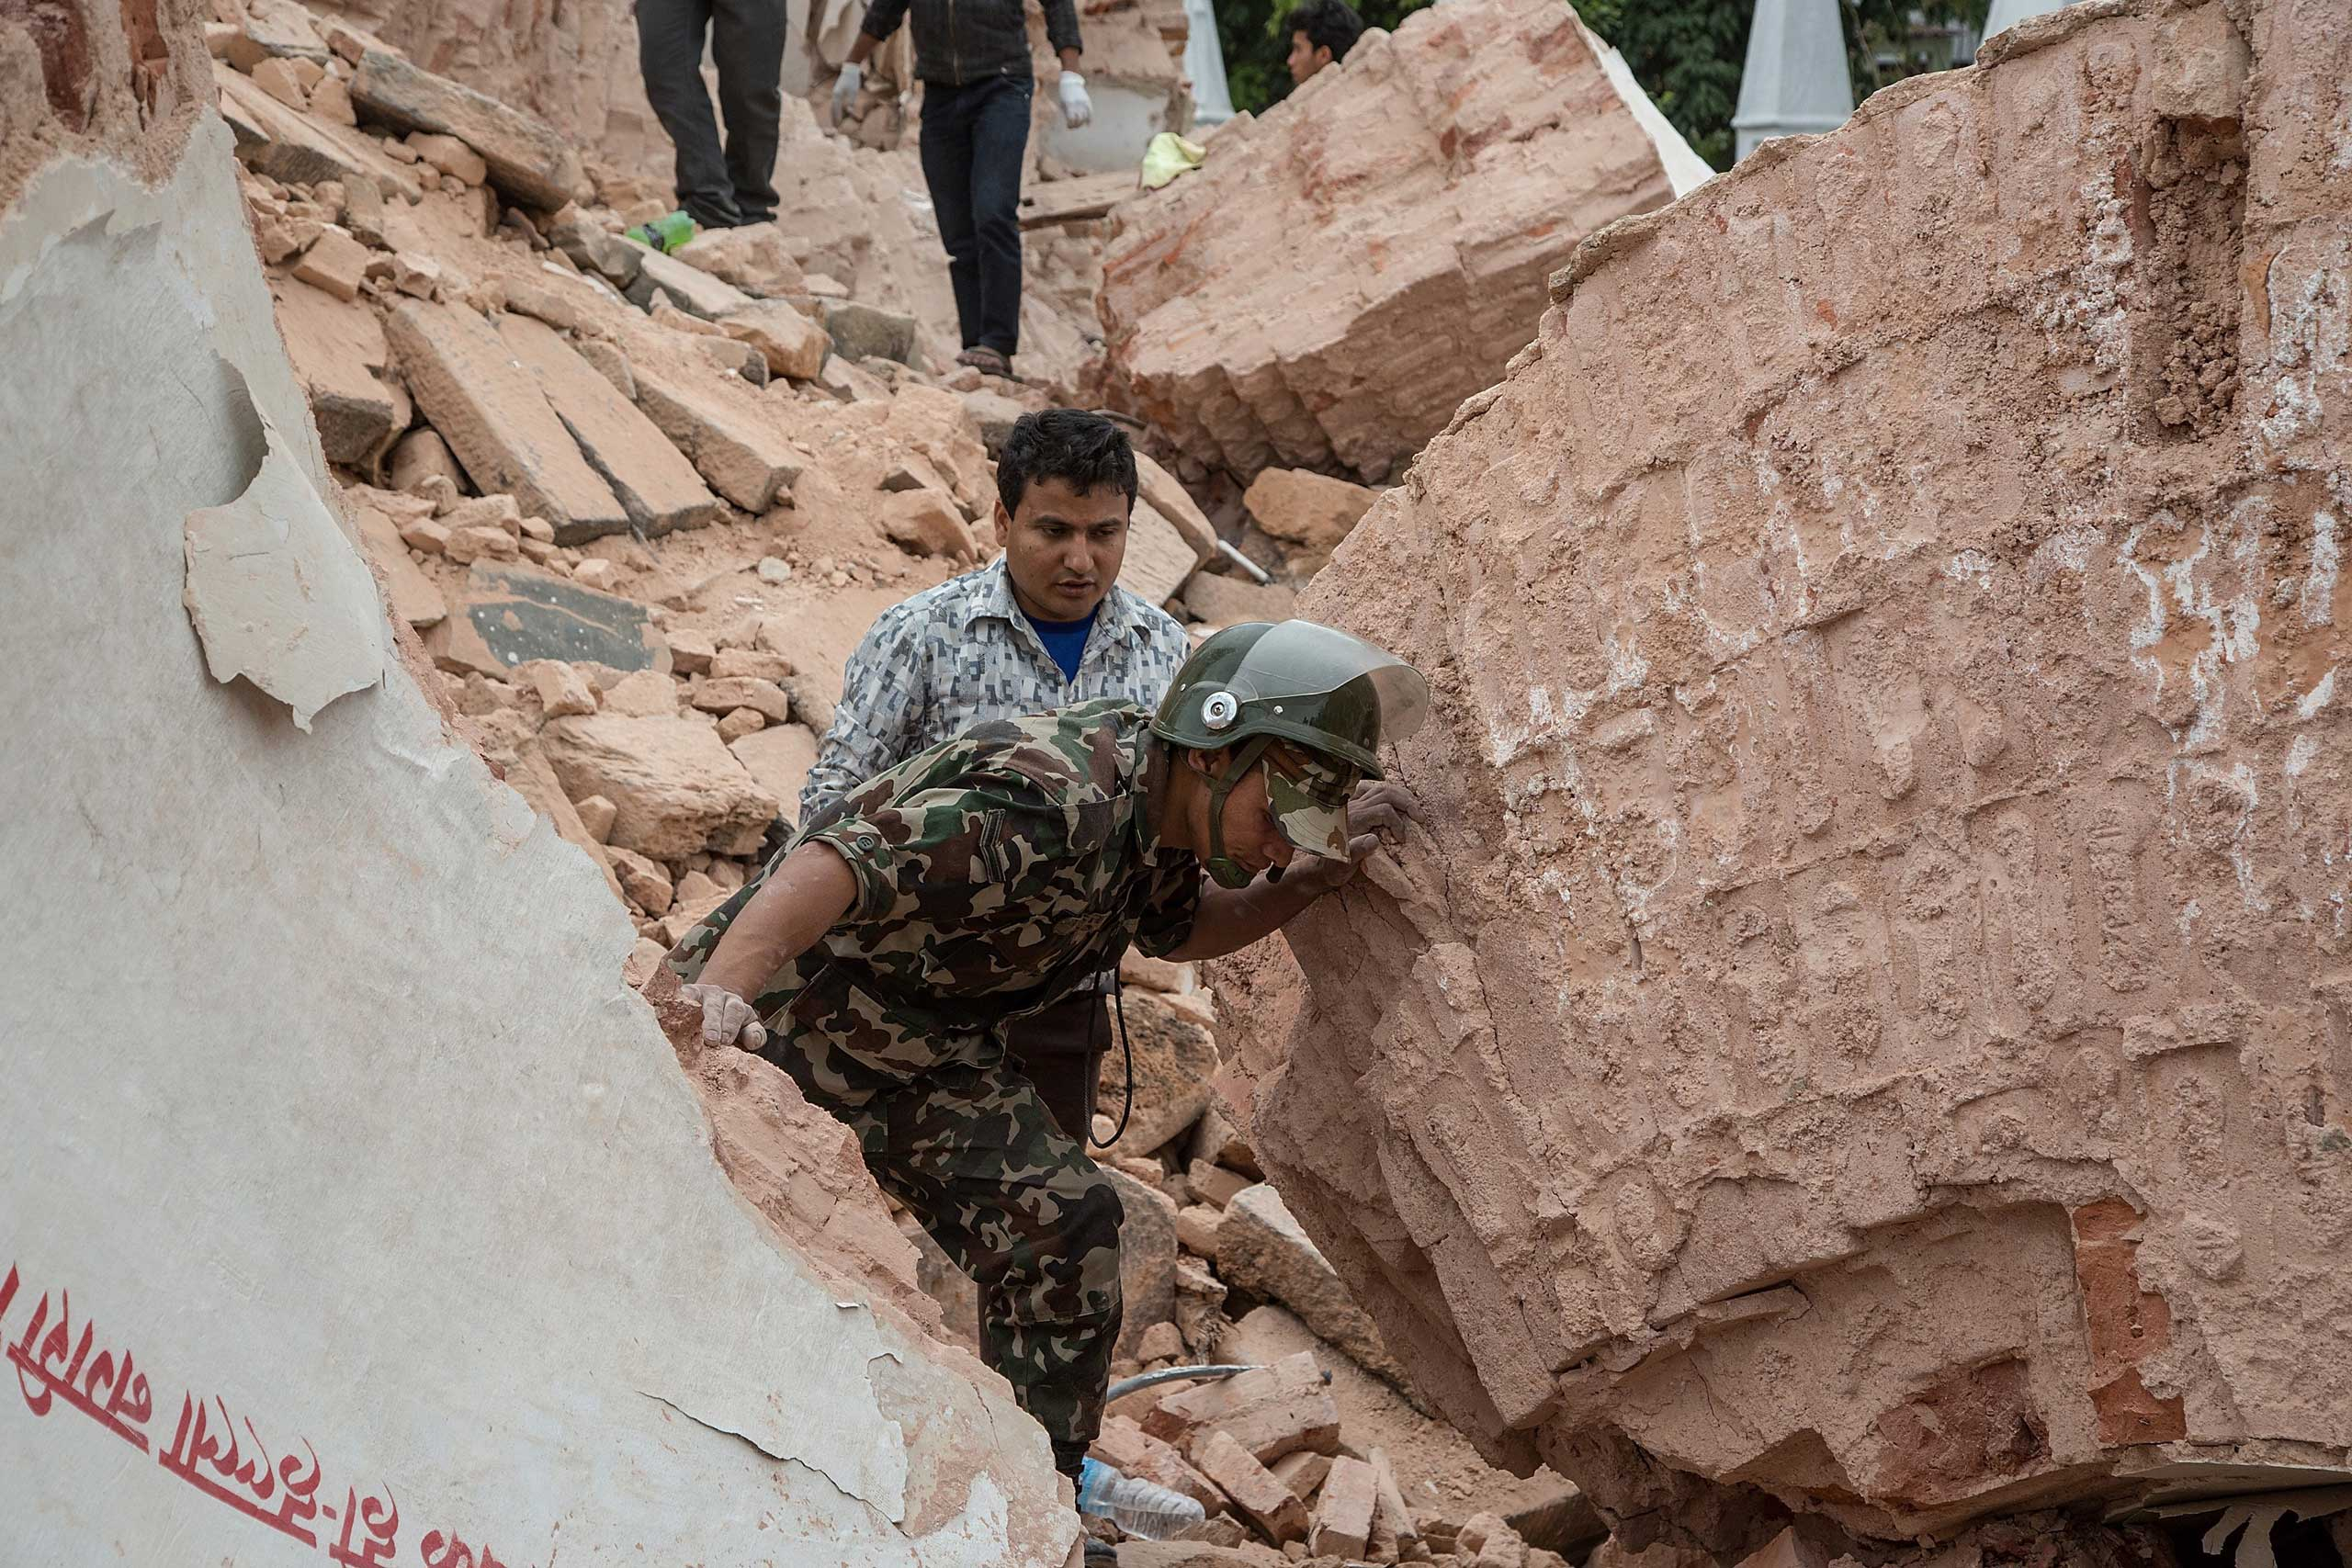 Emergency rescue workers search for survivors in the debris of Dharara tower in Kathmandu after it collapsed.